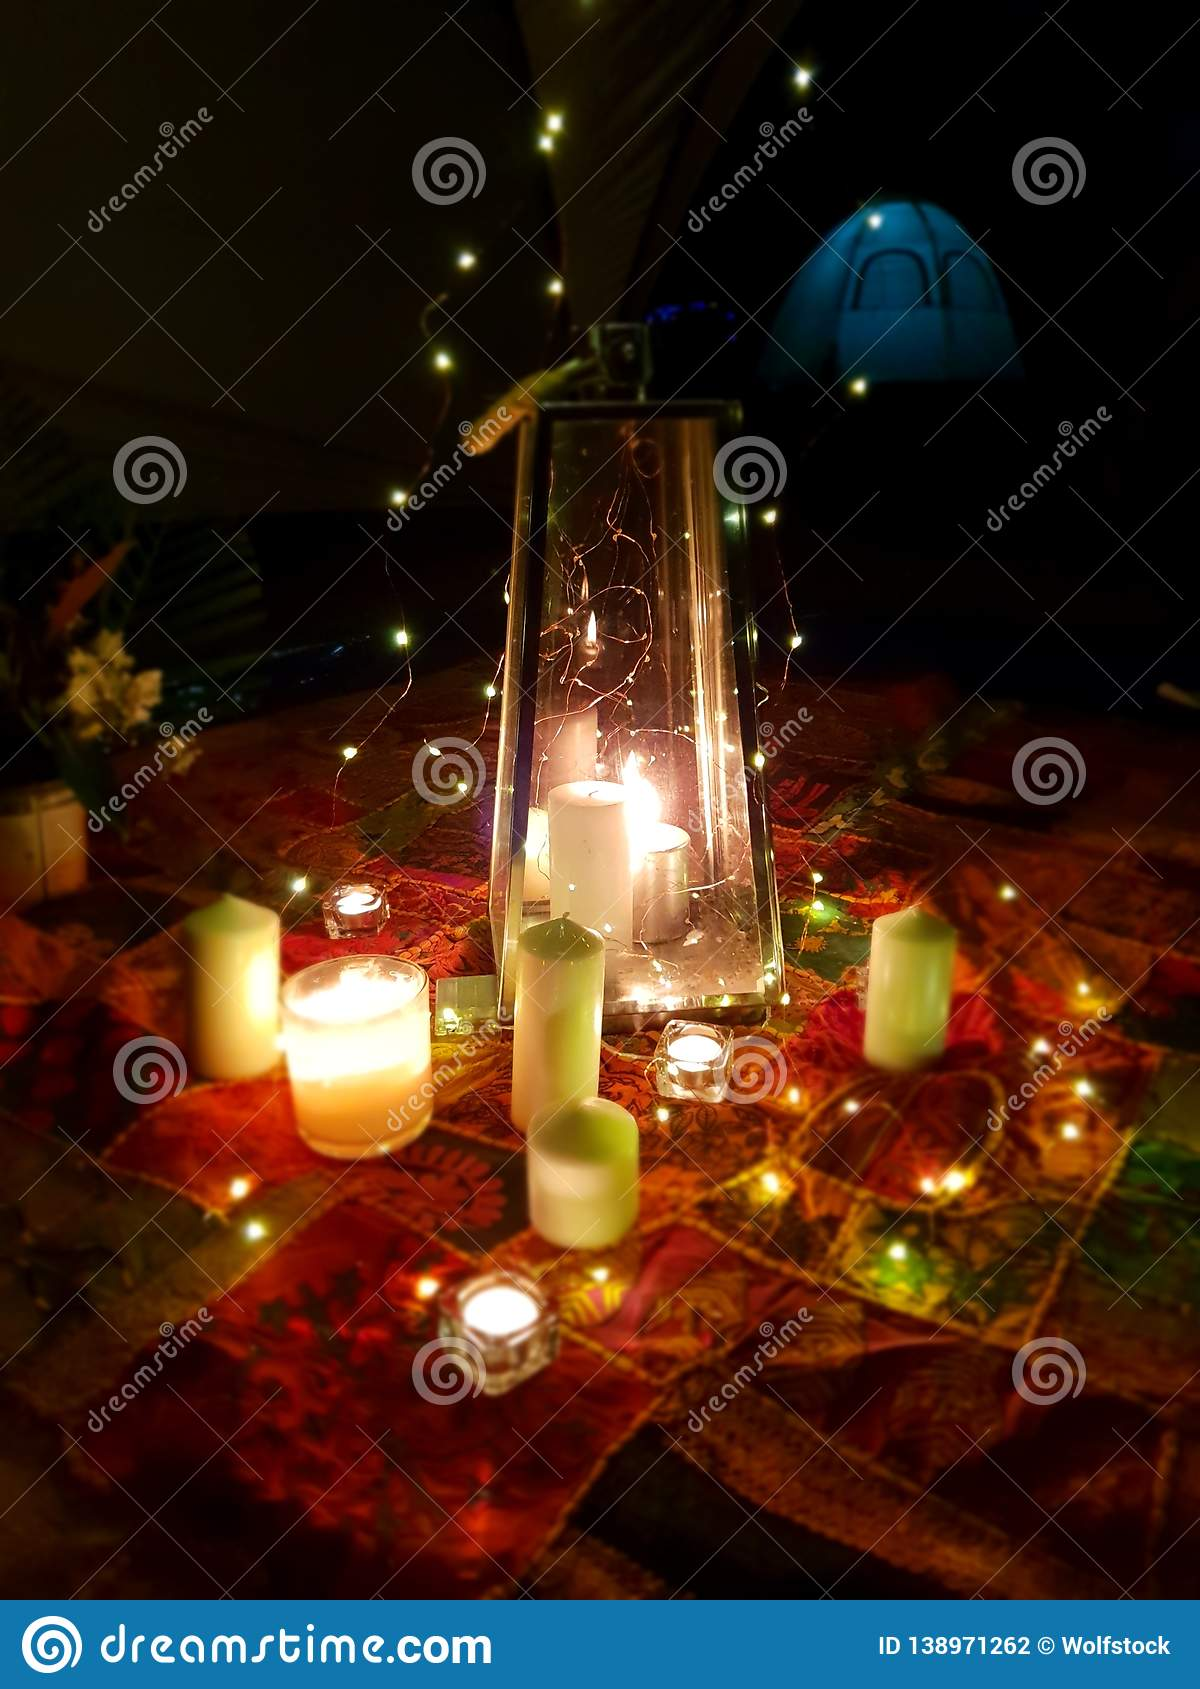 Candle lit candlelit camping picnic blanket under moonlight